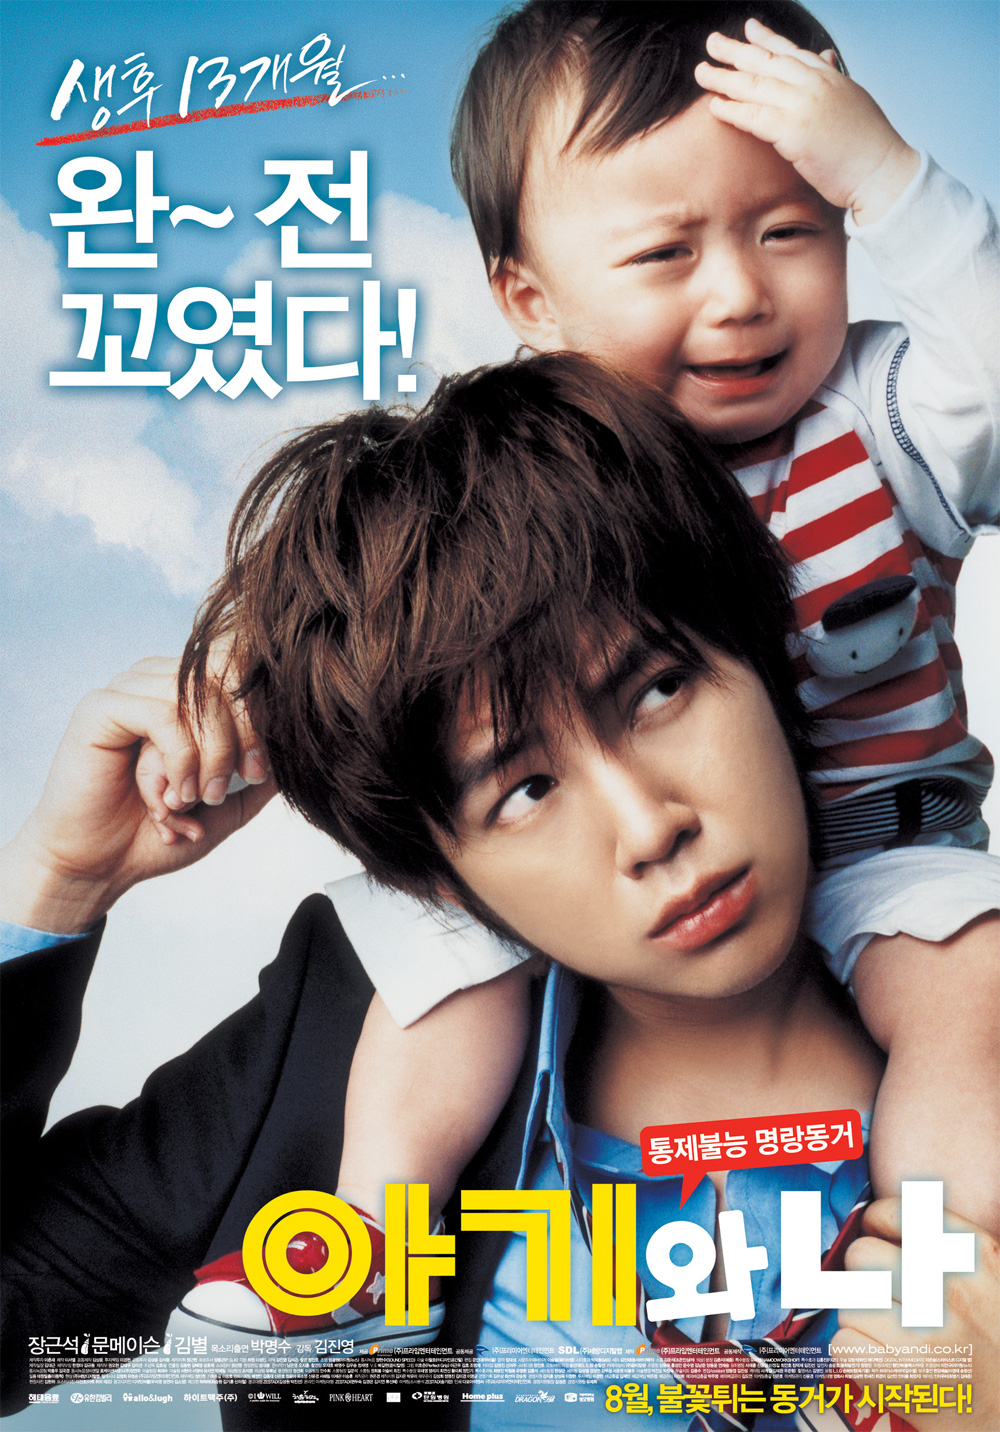 pop Confessions: Just Finished: Baby and IA Korean Movie!